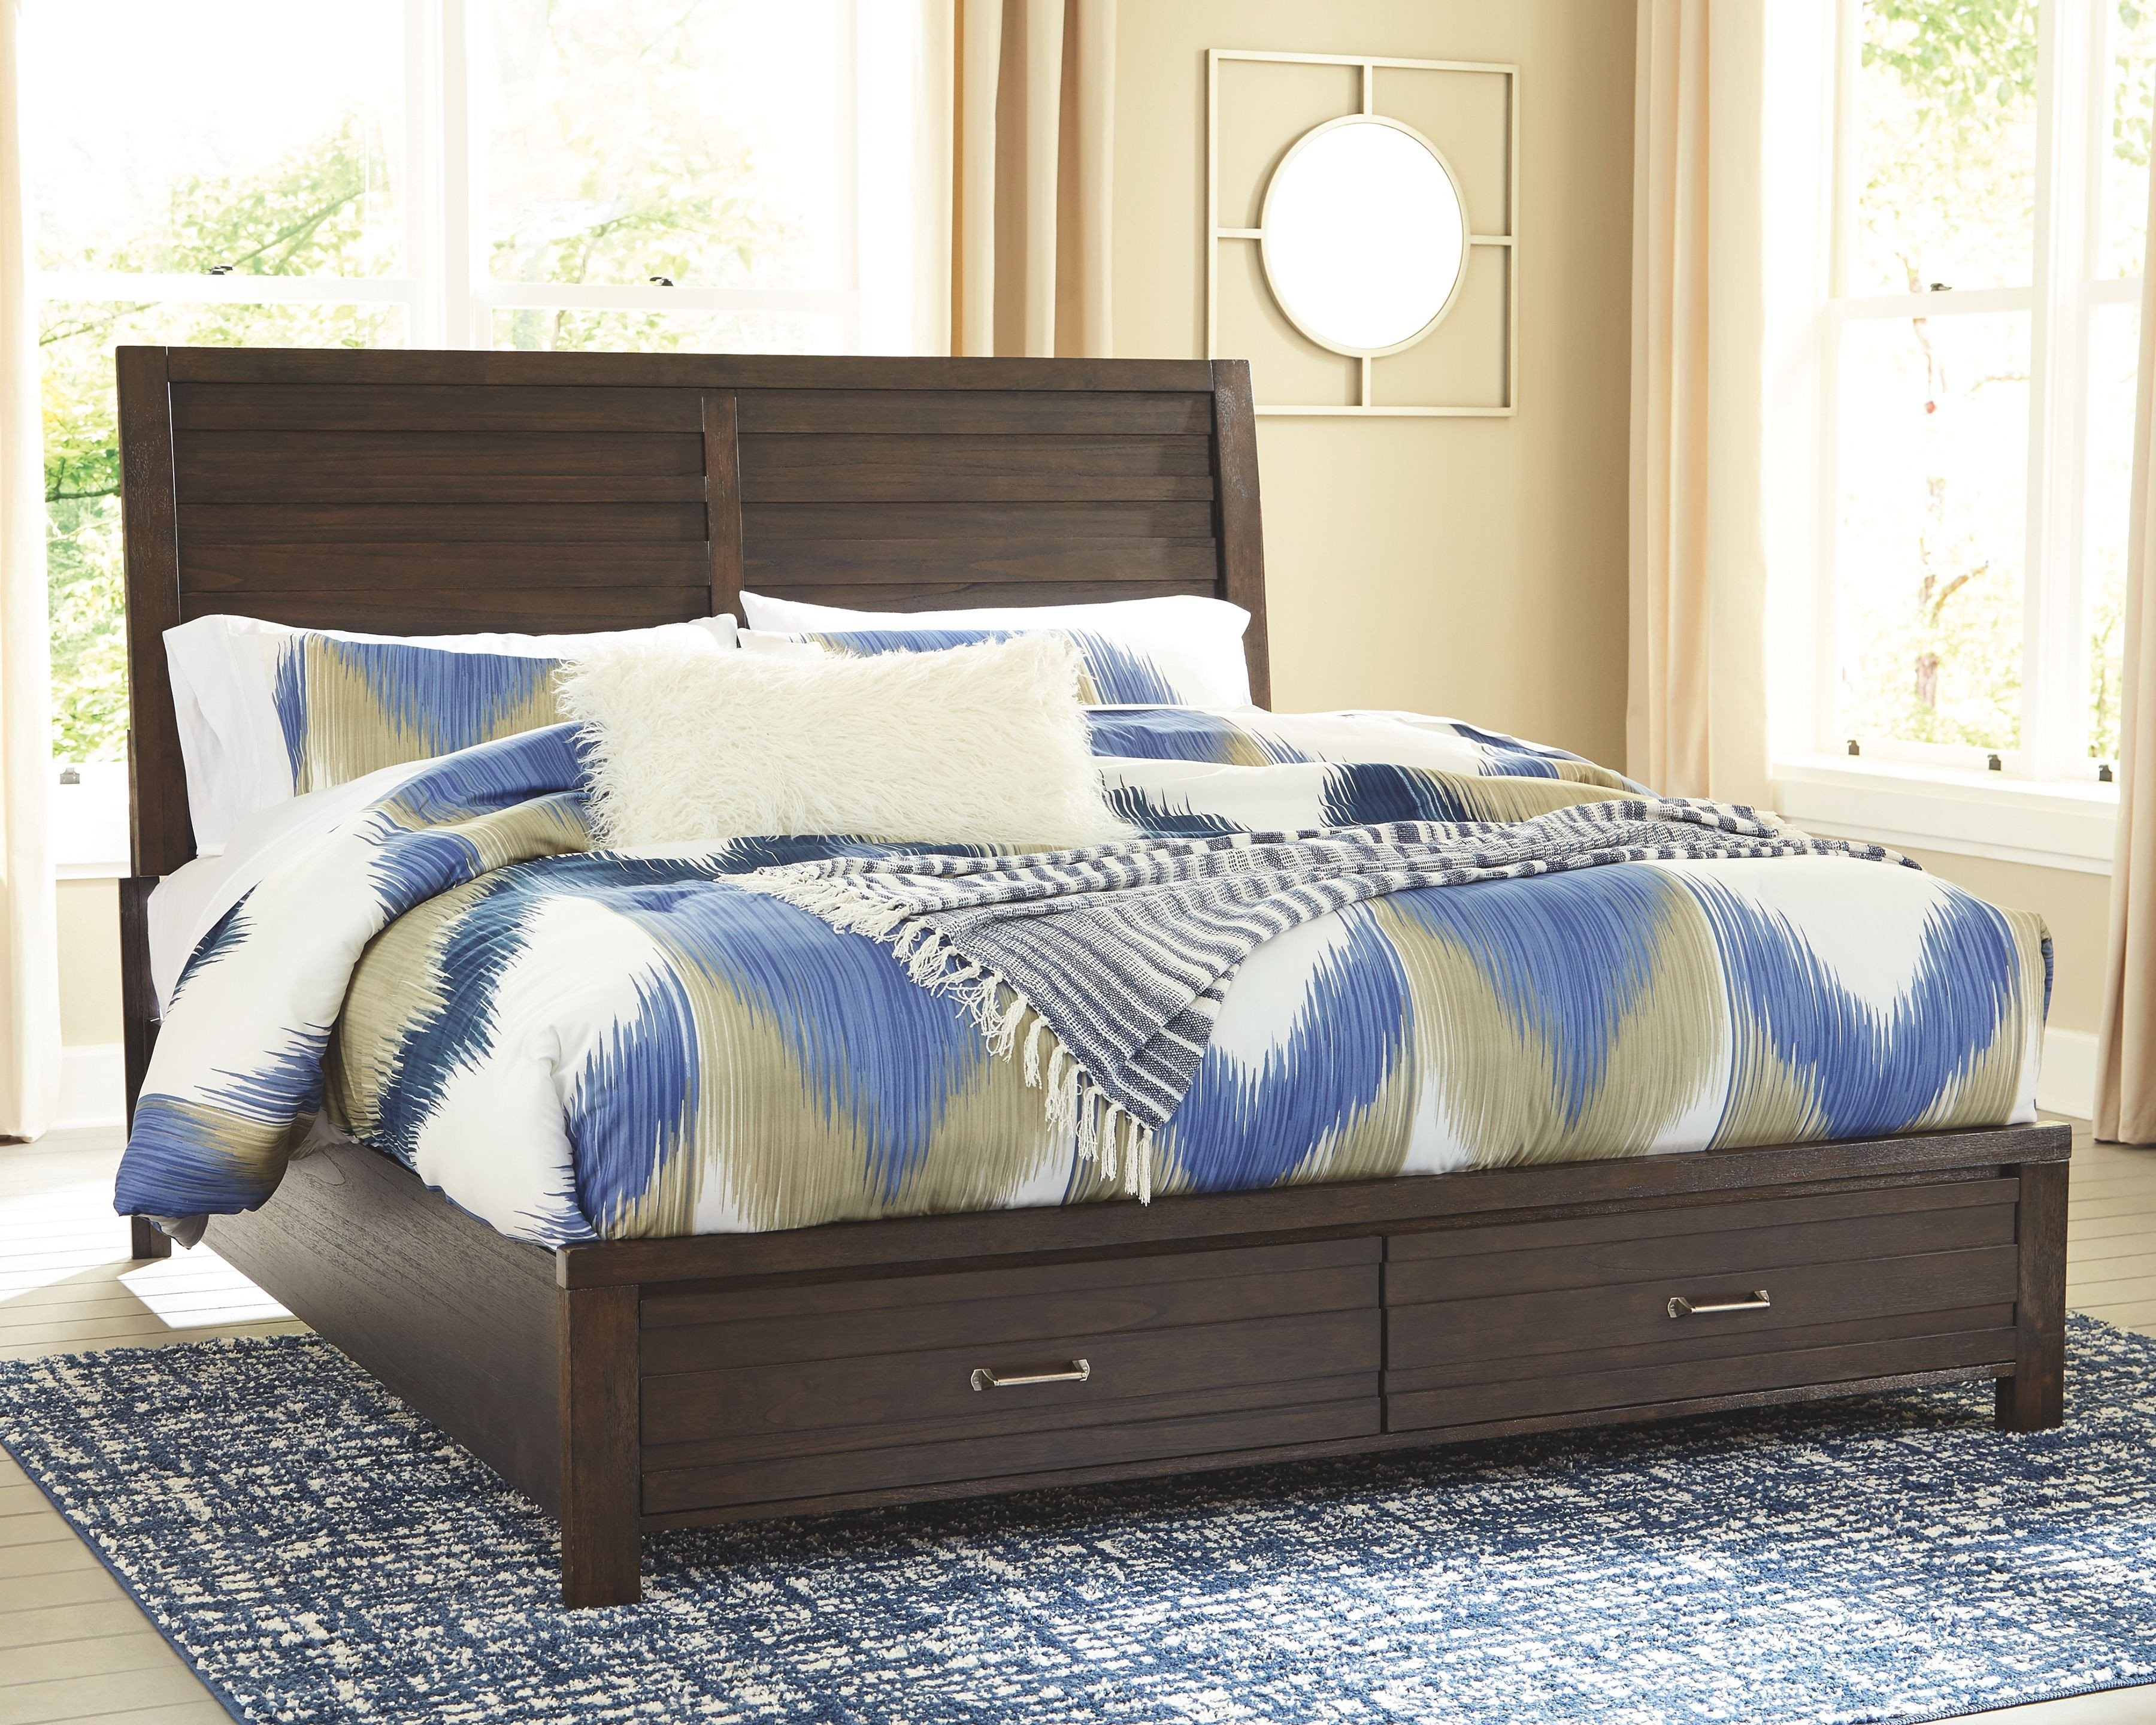 Bedroom Furniture Set King Lovely Darbry California King Panel Bed with Storage Brown